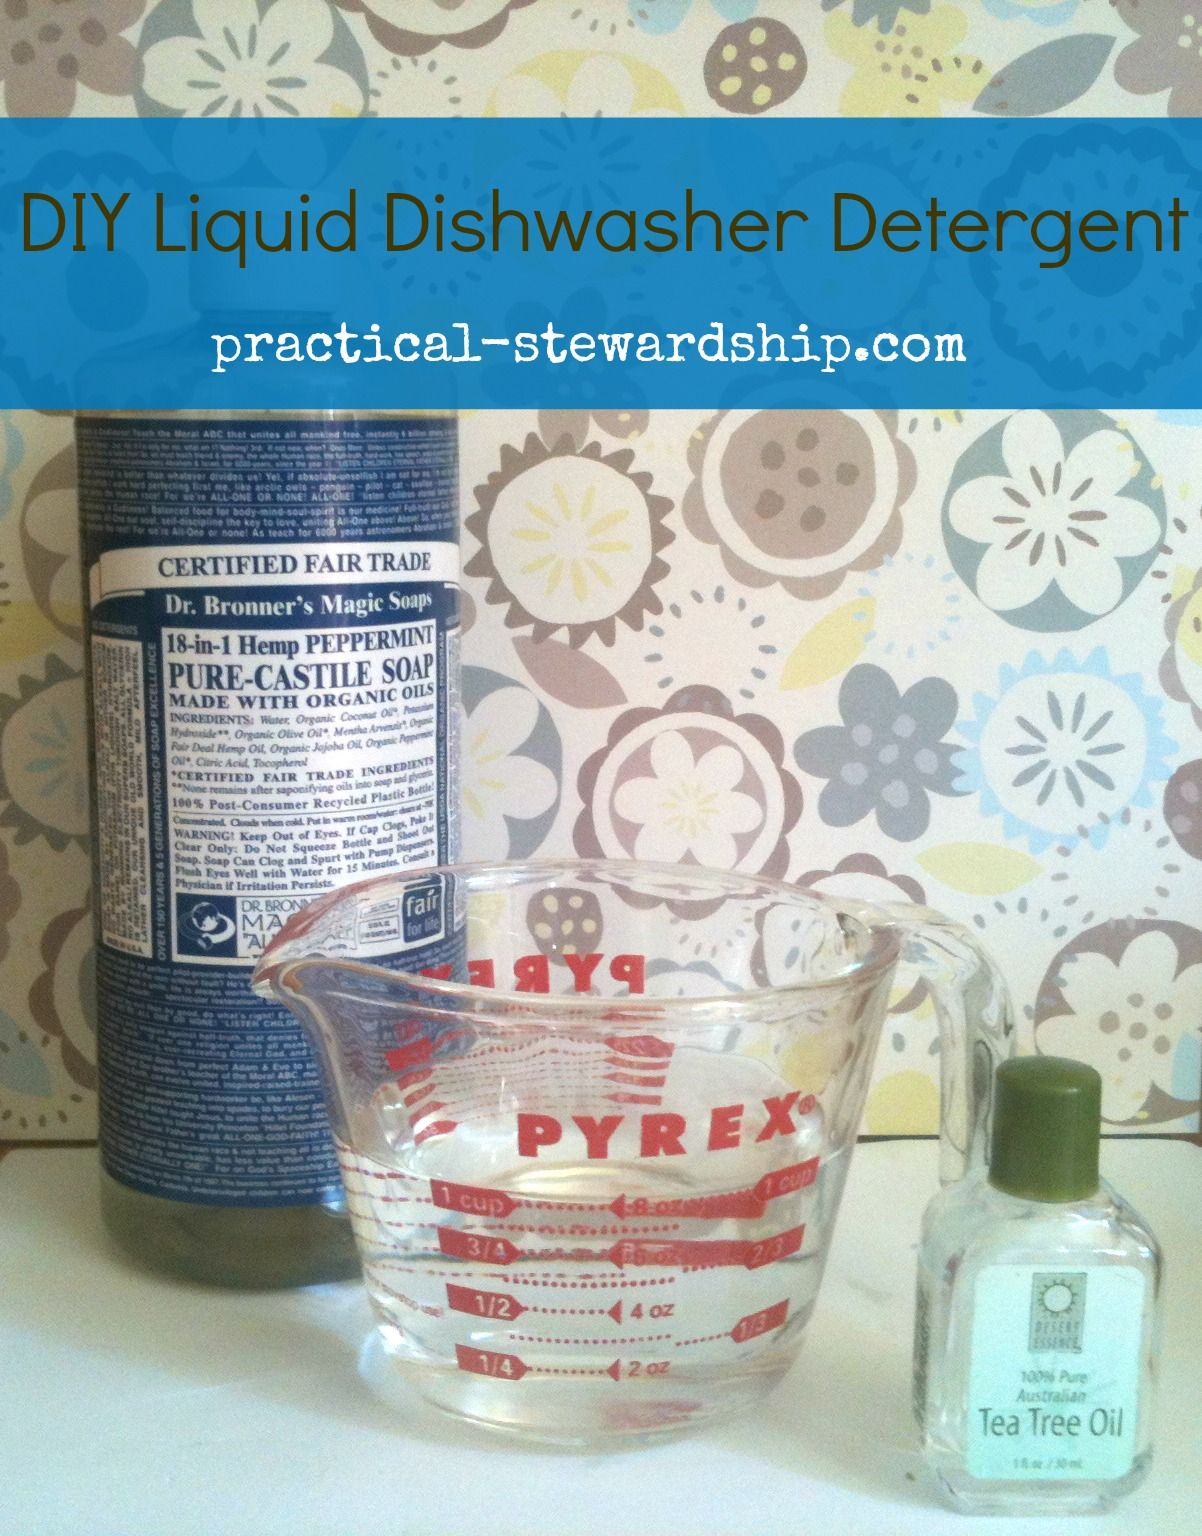 Revised Improved Homemade Three Ingredient Liquid Dishwasher Detergent Practical Stewardship Recipe Homemade Liquid Dishwasher Detergent Dishwasher Detergent Diy Dishwasher Detergent